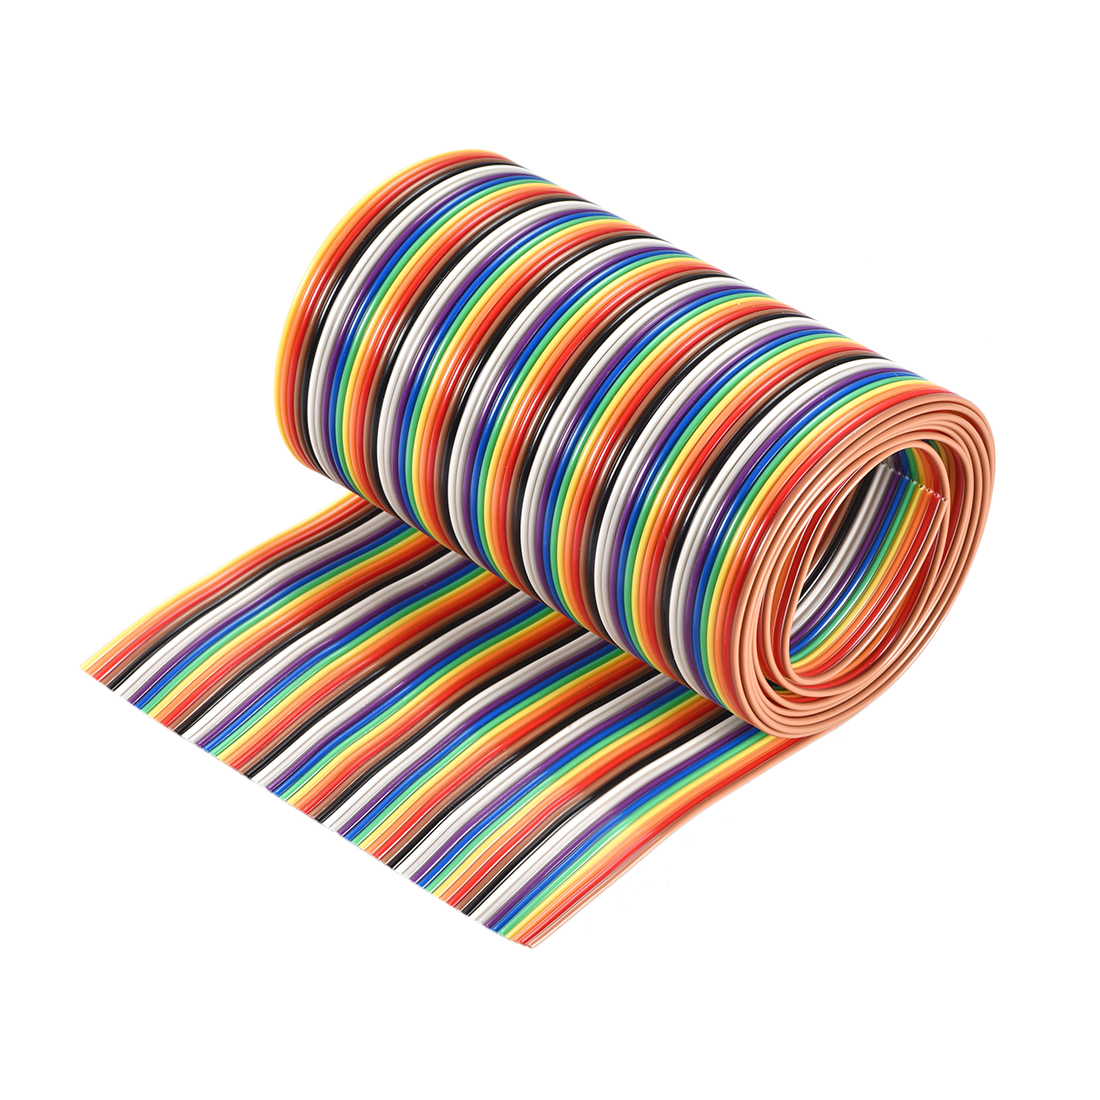 IDC Rainbow Wire Flat Ribbon Cable 64P 1.27mm Pitch 1meter/3.3ft Length